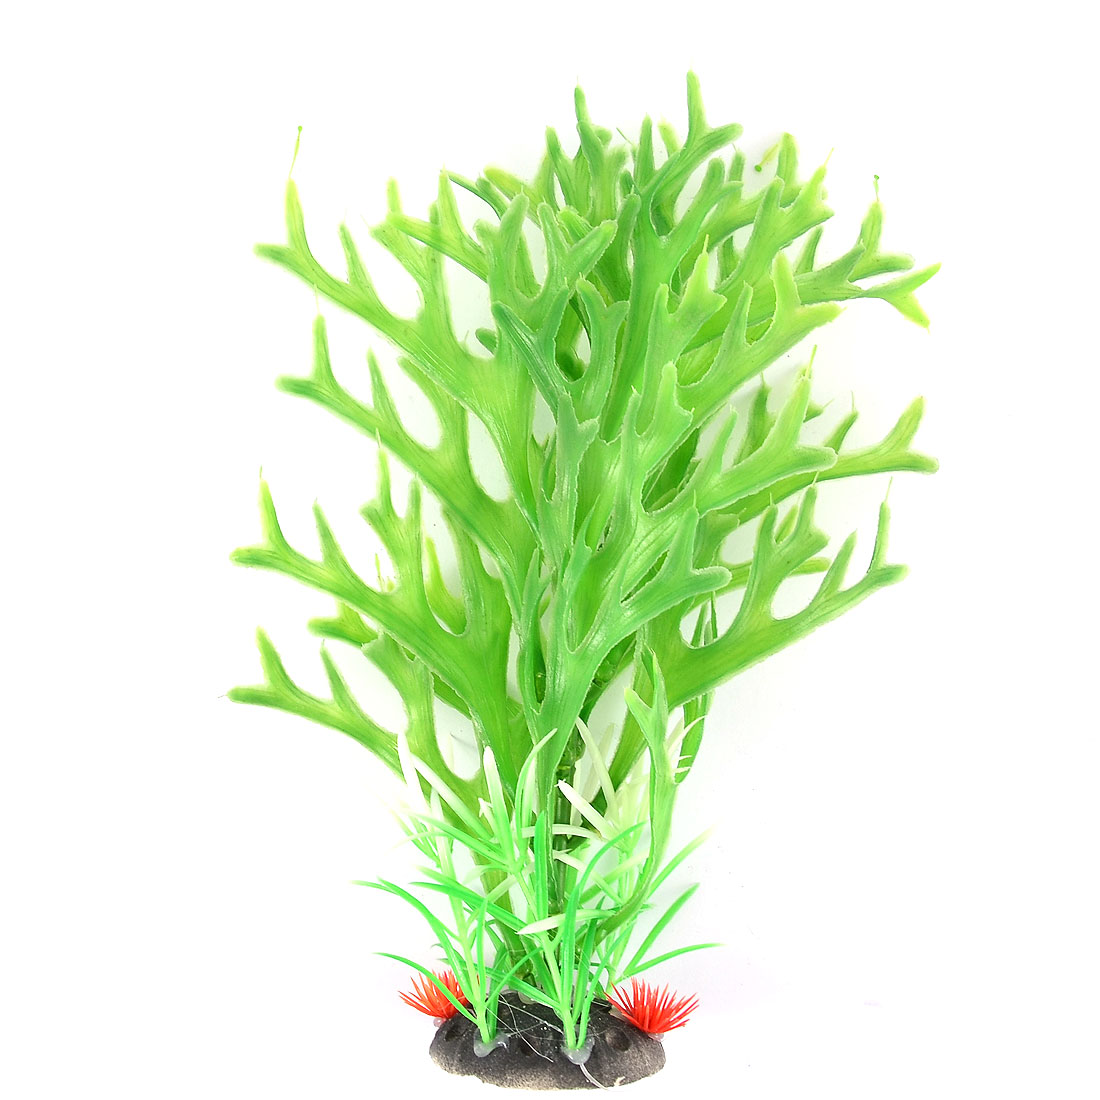 Aquarium Fish Tank Artificial Underwater Landscape Plant 25cm Height Green